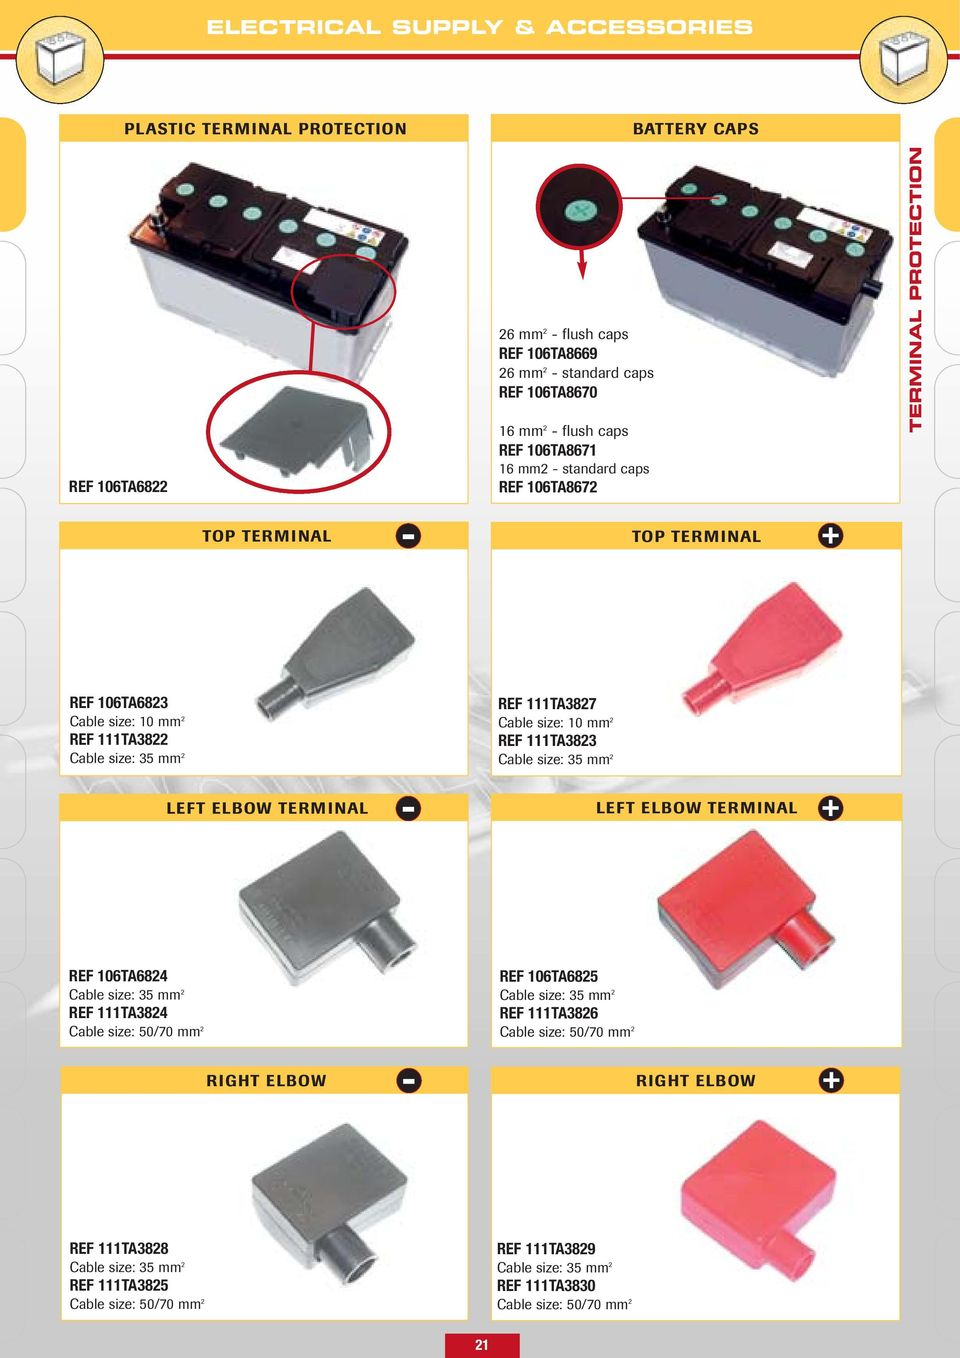 Electrical Supply Accessories Batteries Pdf Wiring Diagram For Stand Alone Charger Oil Kit Size 35 Mm 2 Left Elbow Terminal Ref 106ta6824 Cable